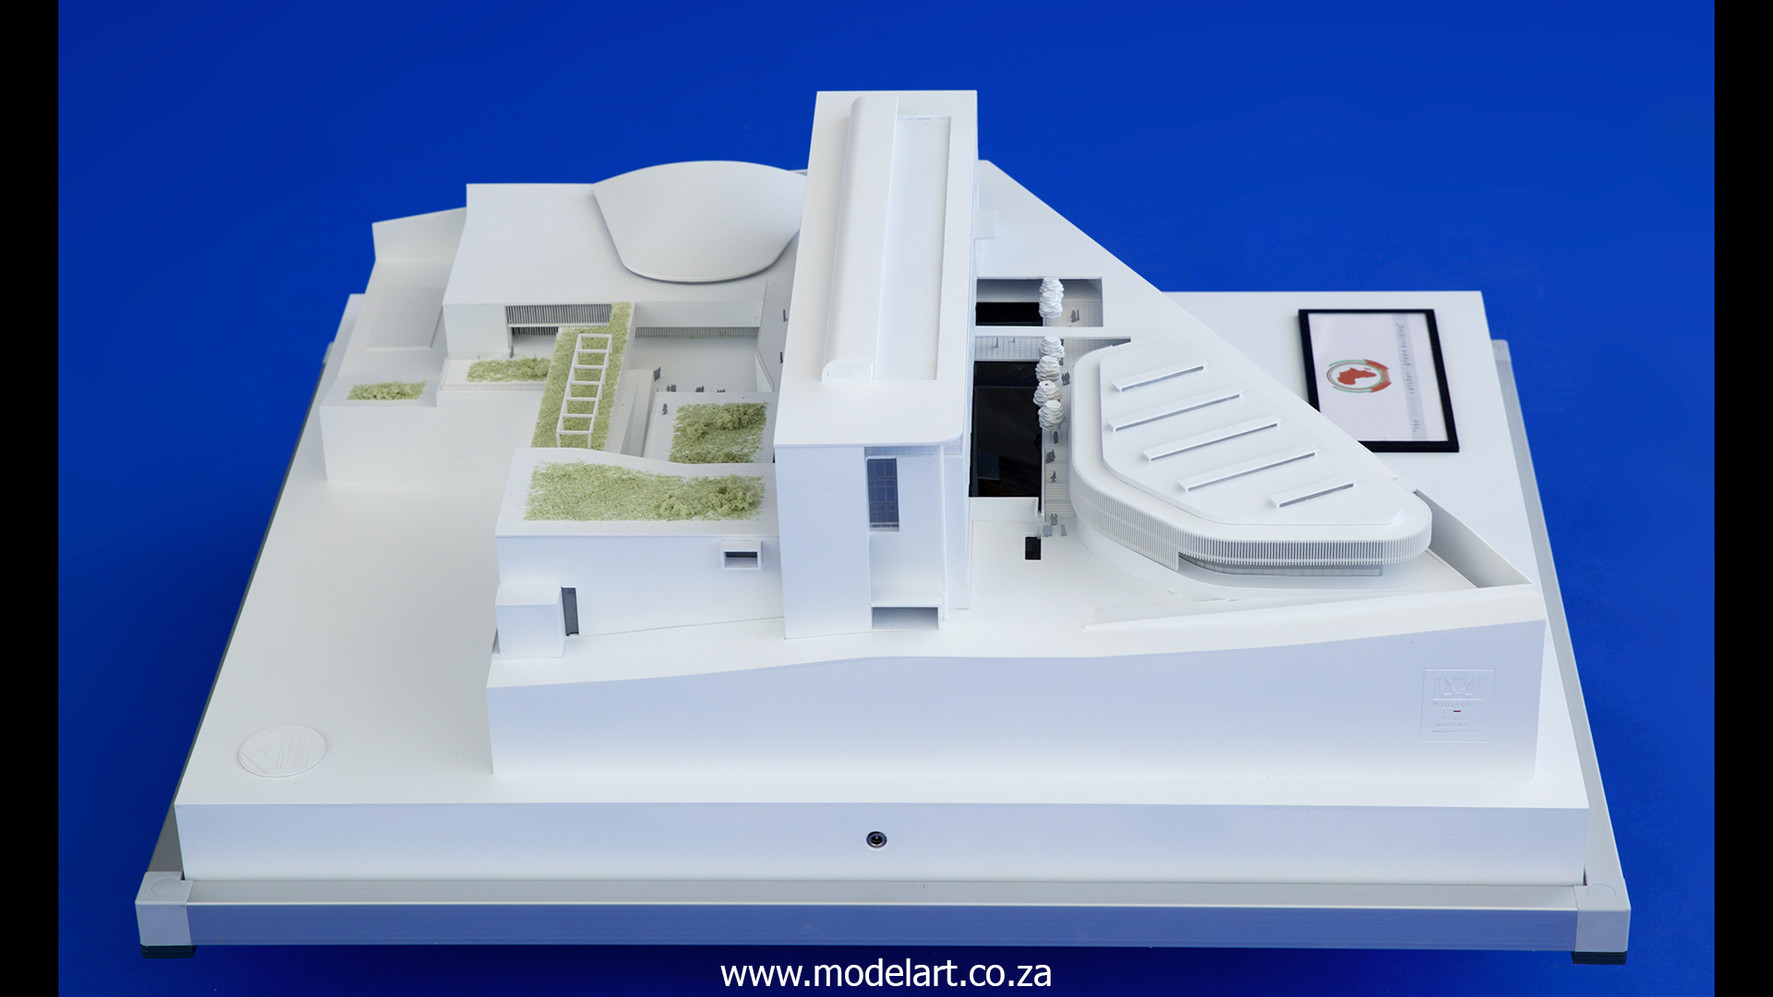 Architectural-Scale-Model-Conceptual-AU Building-2